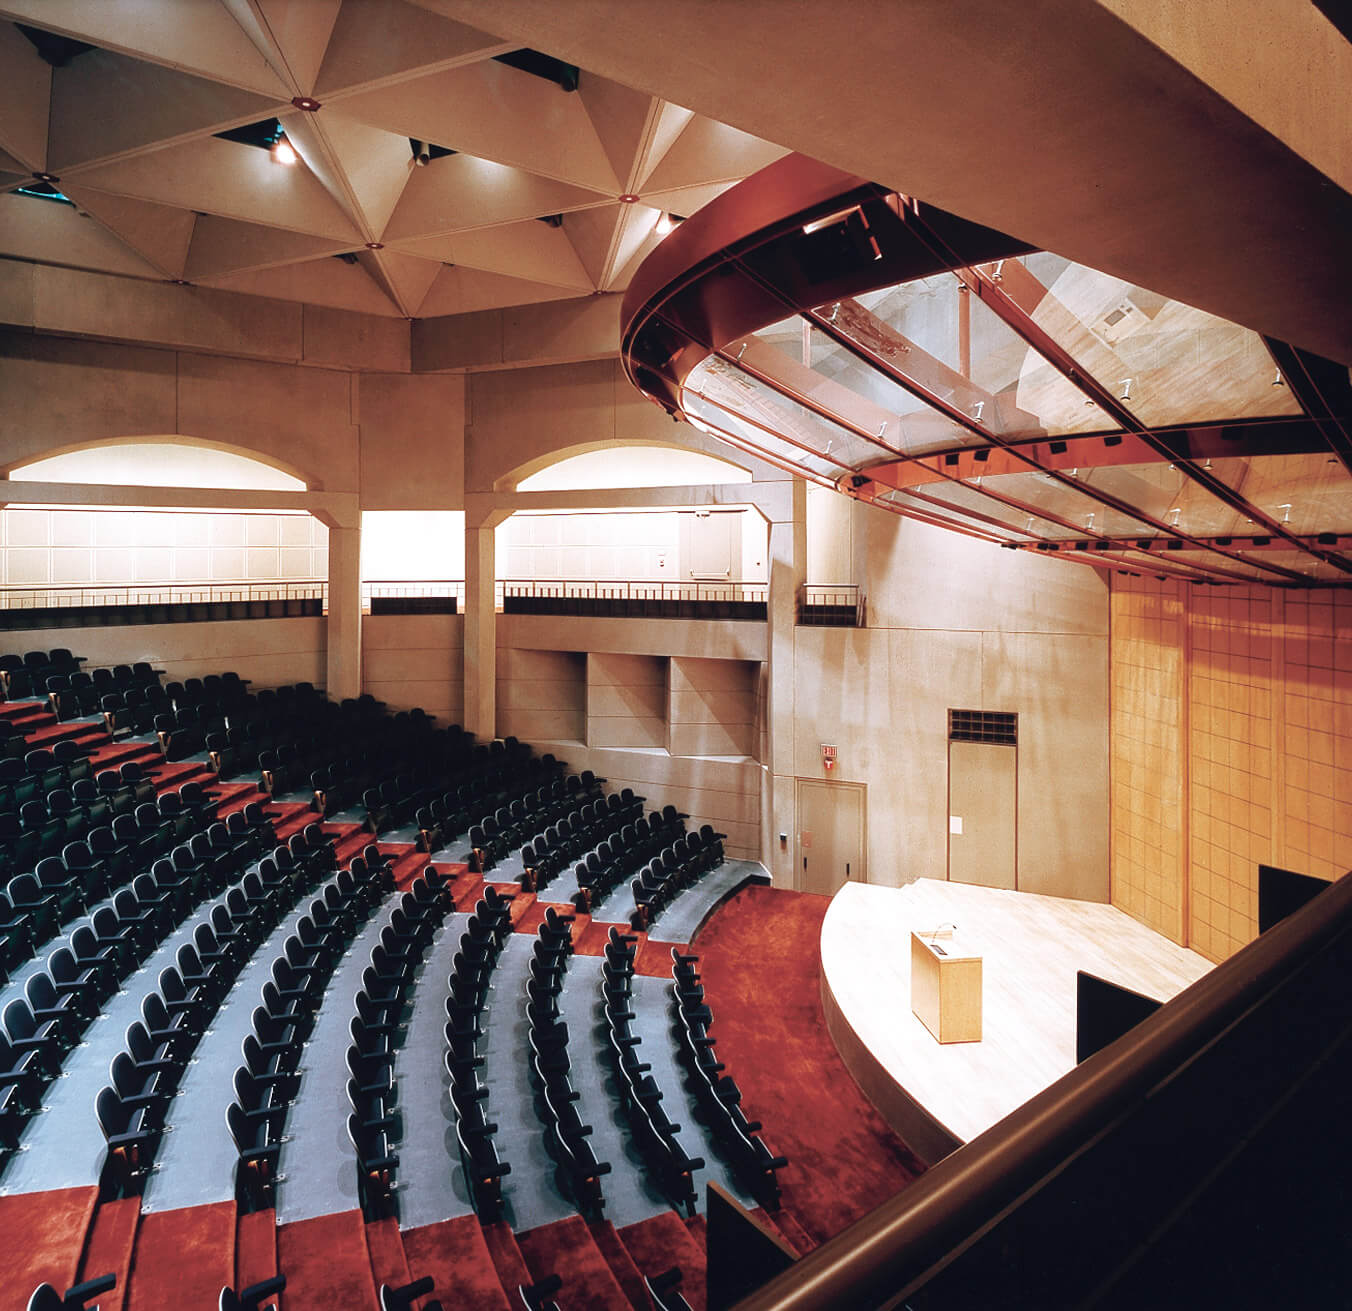 United State Holocaust Memorial Museum auditorium with red carpeting, blue seats, and stone walls with large geometric openings.